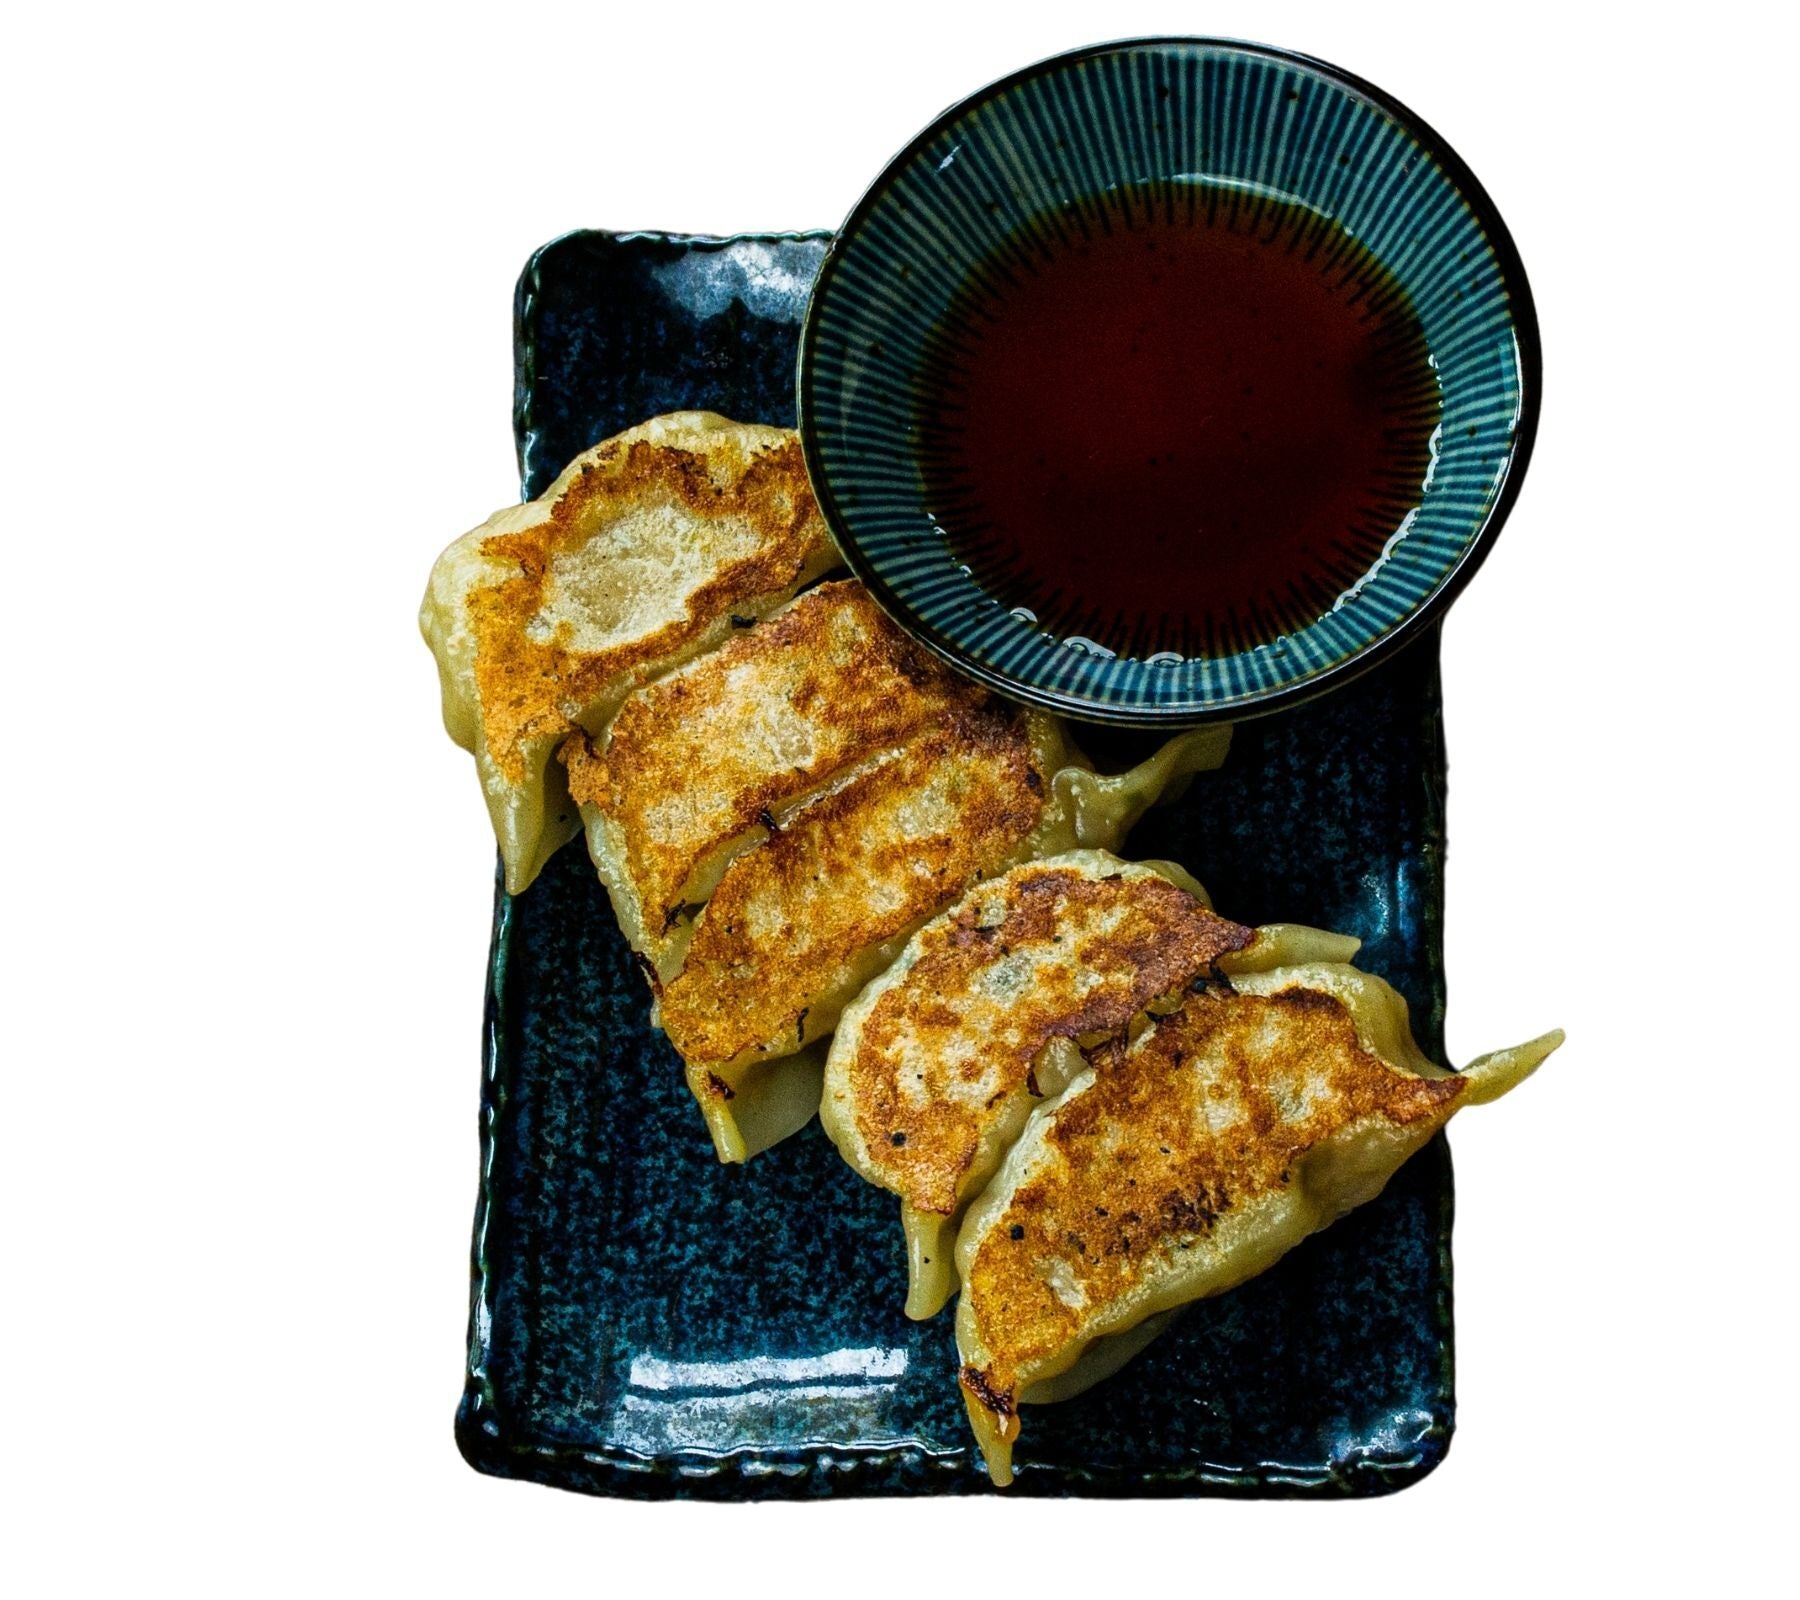 Fried gyoza with sauce on the side